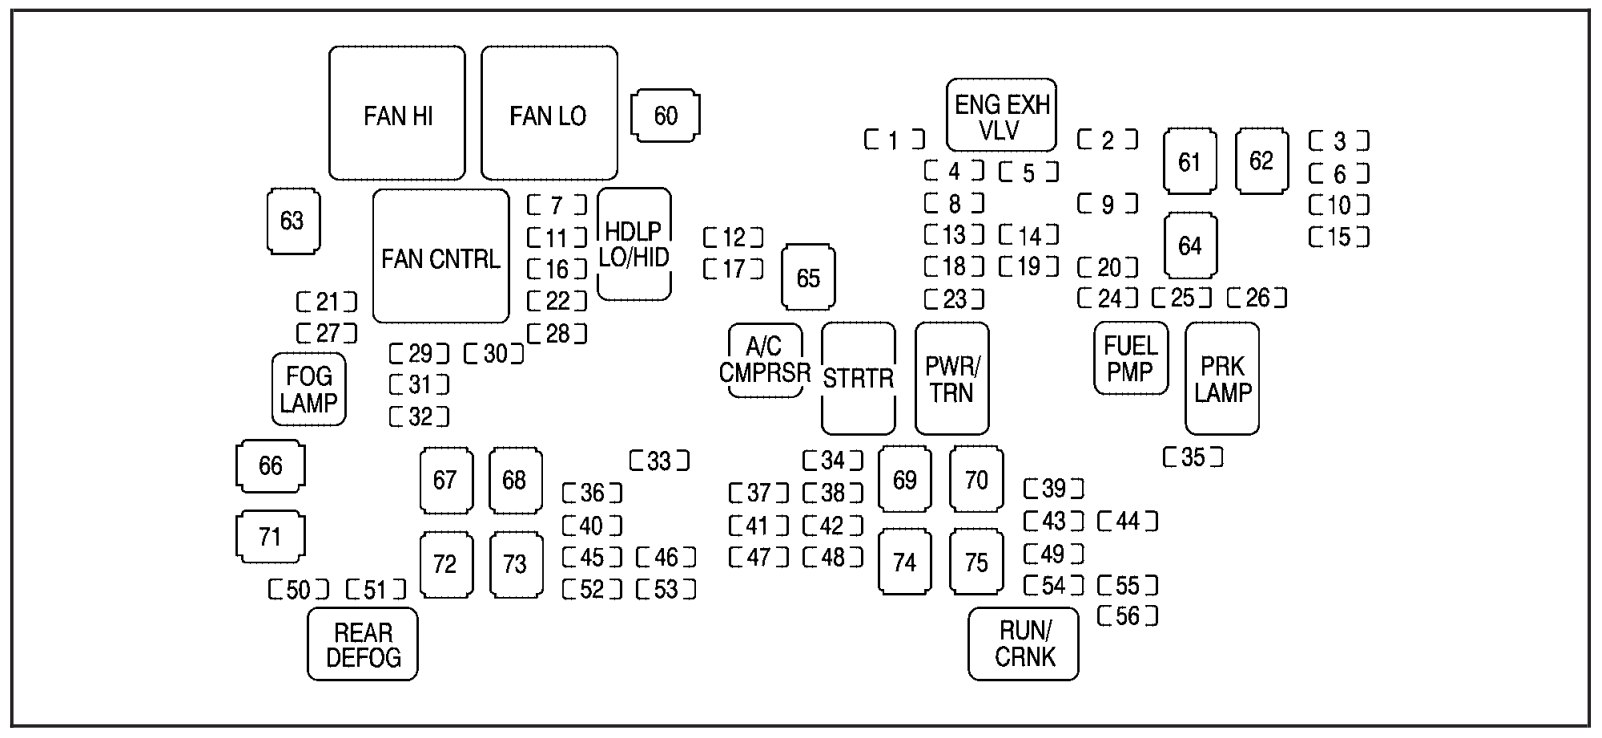 hight resolution of chevrolet suburban 2007 fuse box diagram auto genius 2007 chevy suburban fuse box diagram 2007 chevy suburban fuse diagram